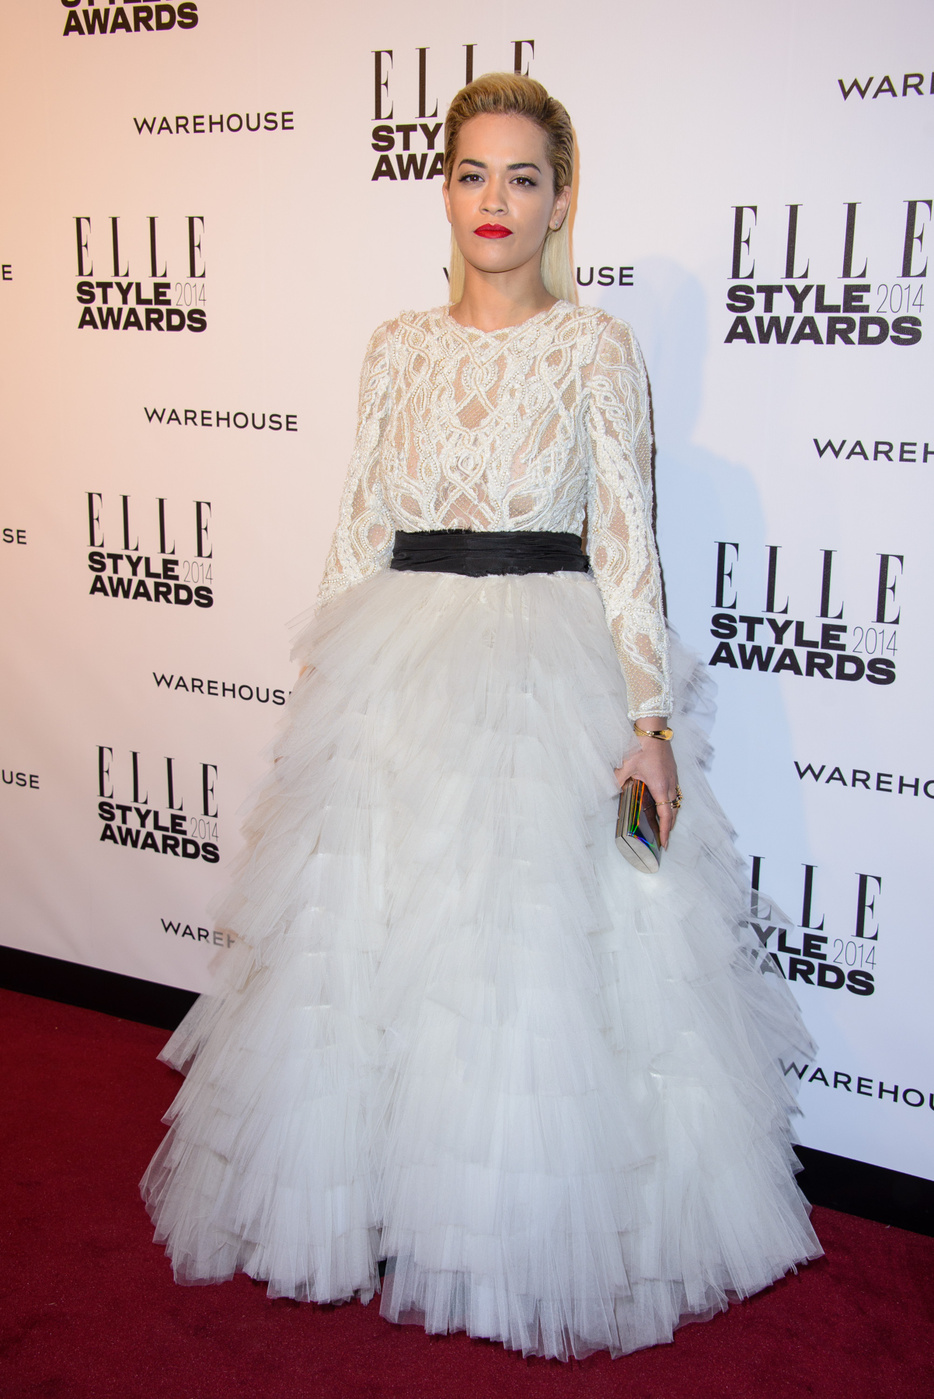 Rita Ora attends the Elle Style Awards 2014 at one Embankment in London